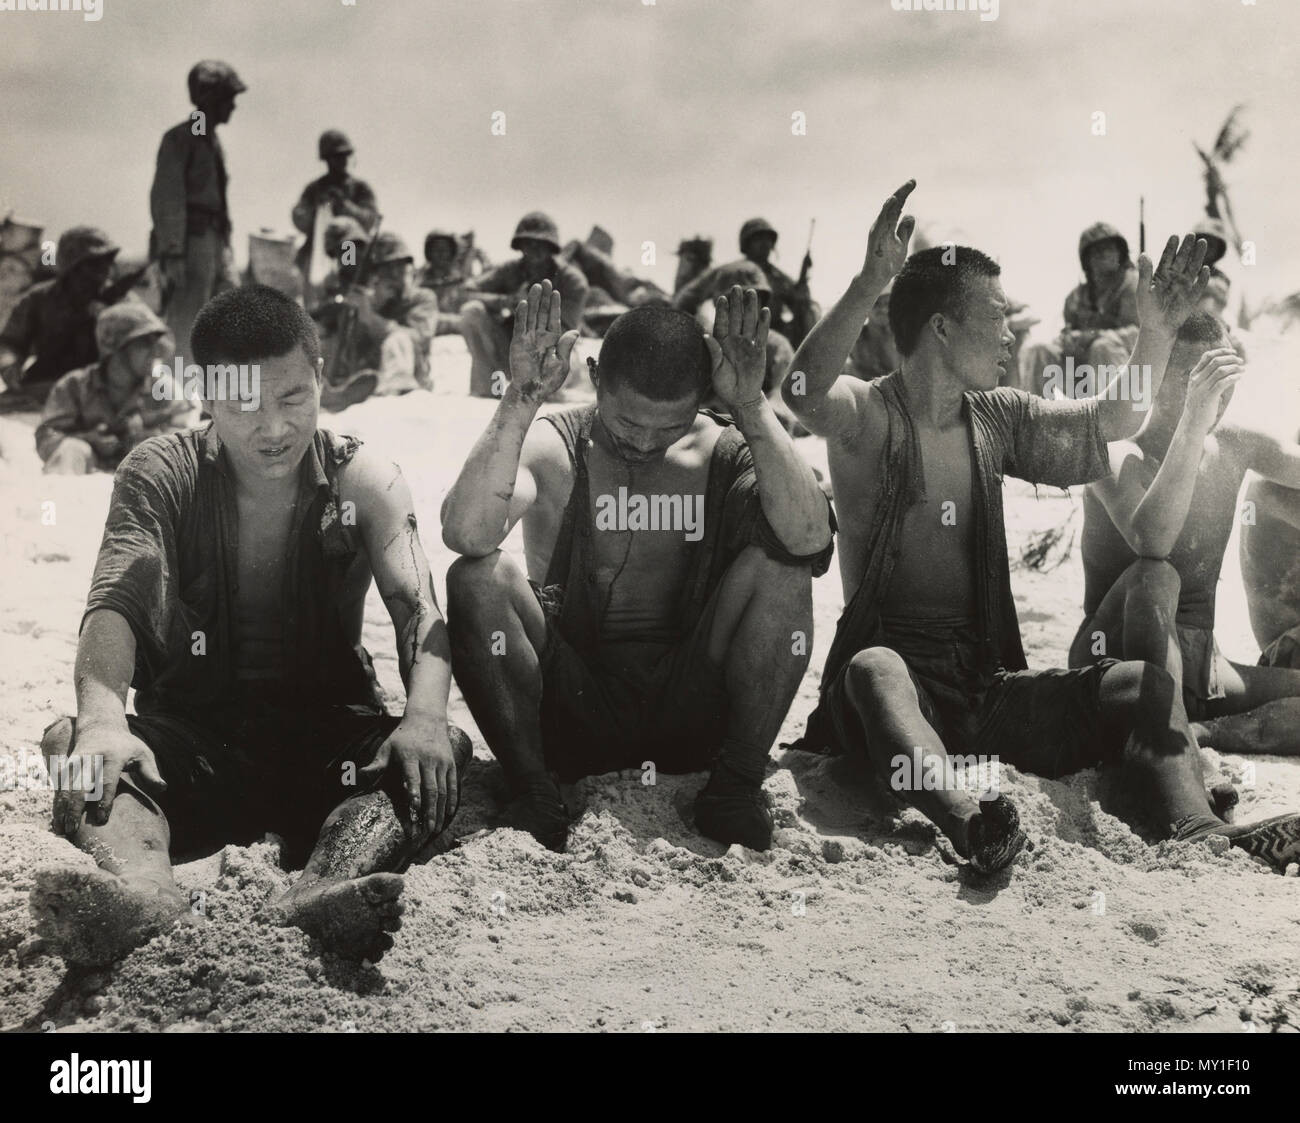 Japanese prisioners from Battle of Tarawa - Stock Image